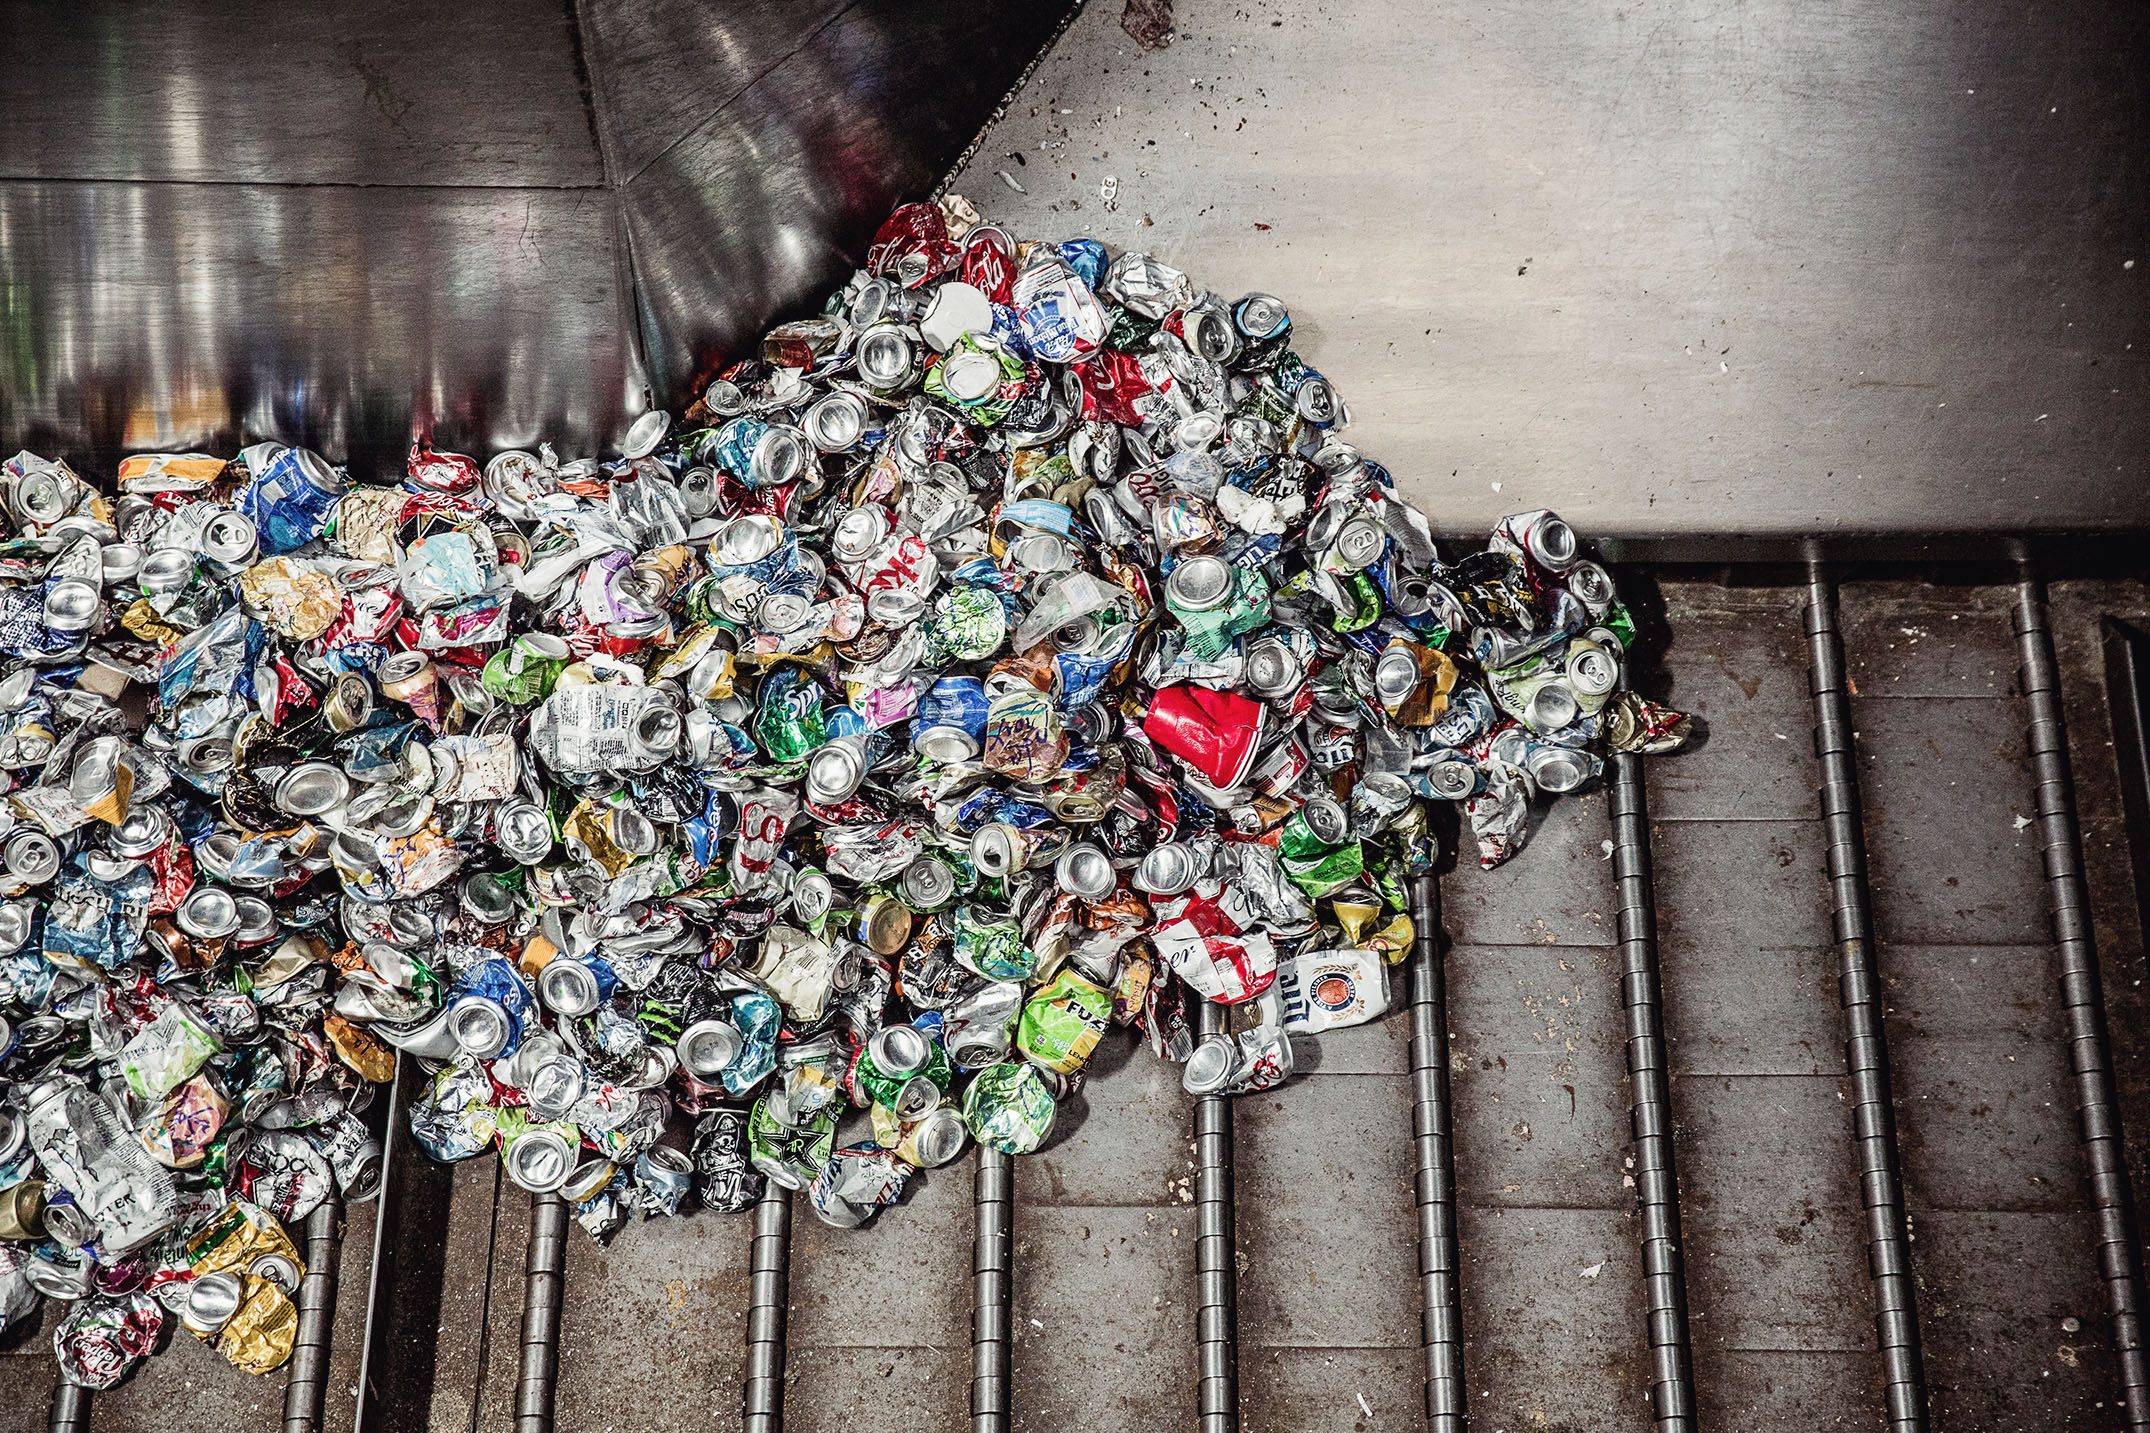 Mike Kane | Aluminum cans at recycling facility | Seattle documentary, editorial, and commercial photography